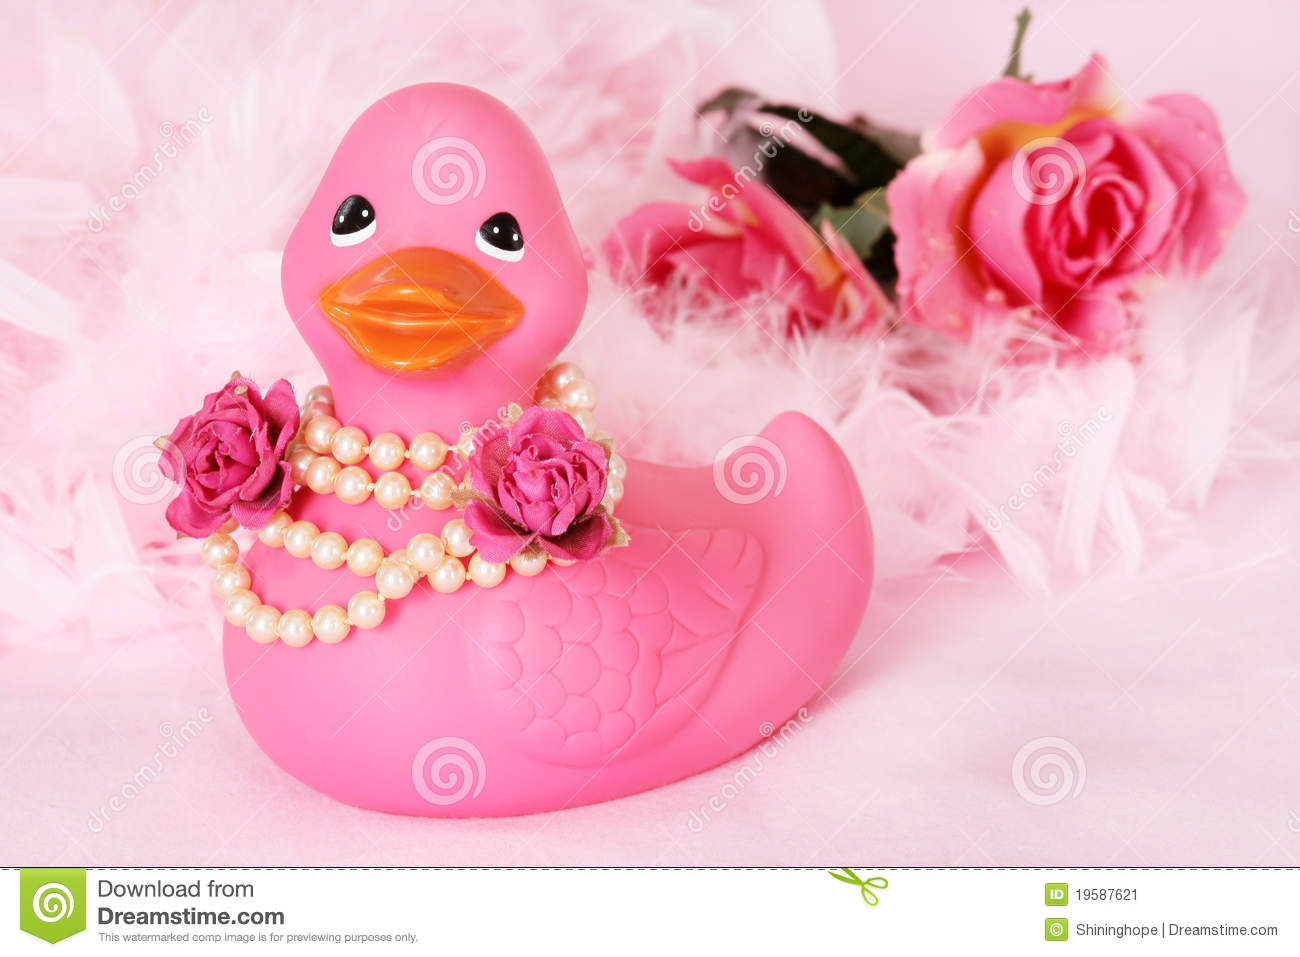 f2c6f2383 Rubber Duck Flower Girl stock image. Image of roses